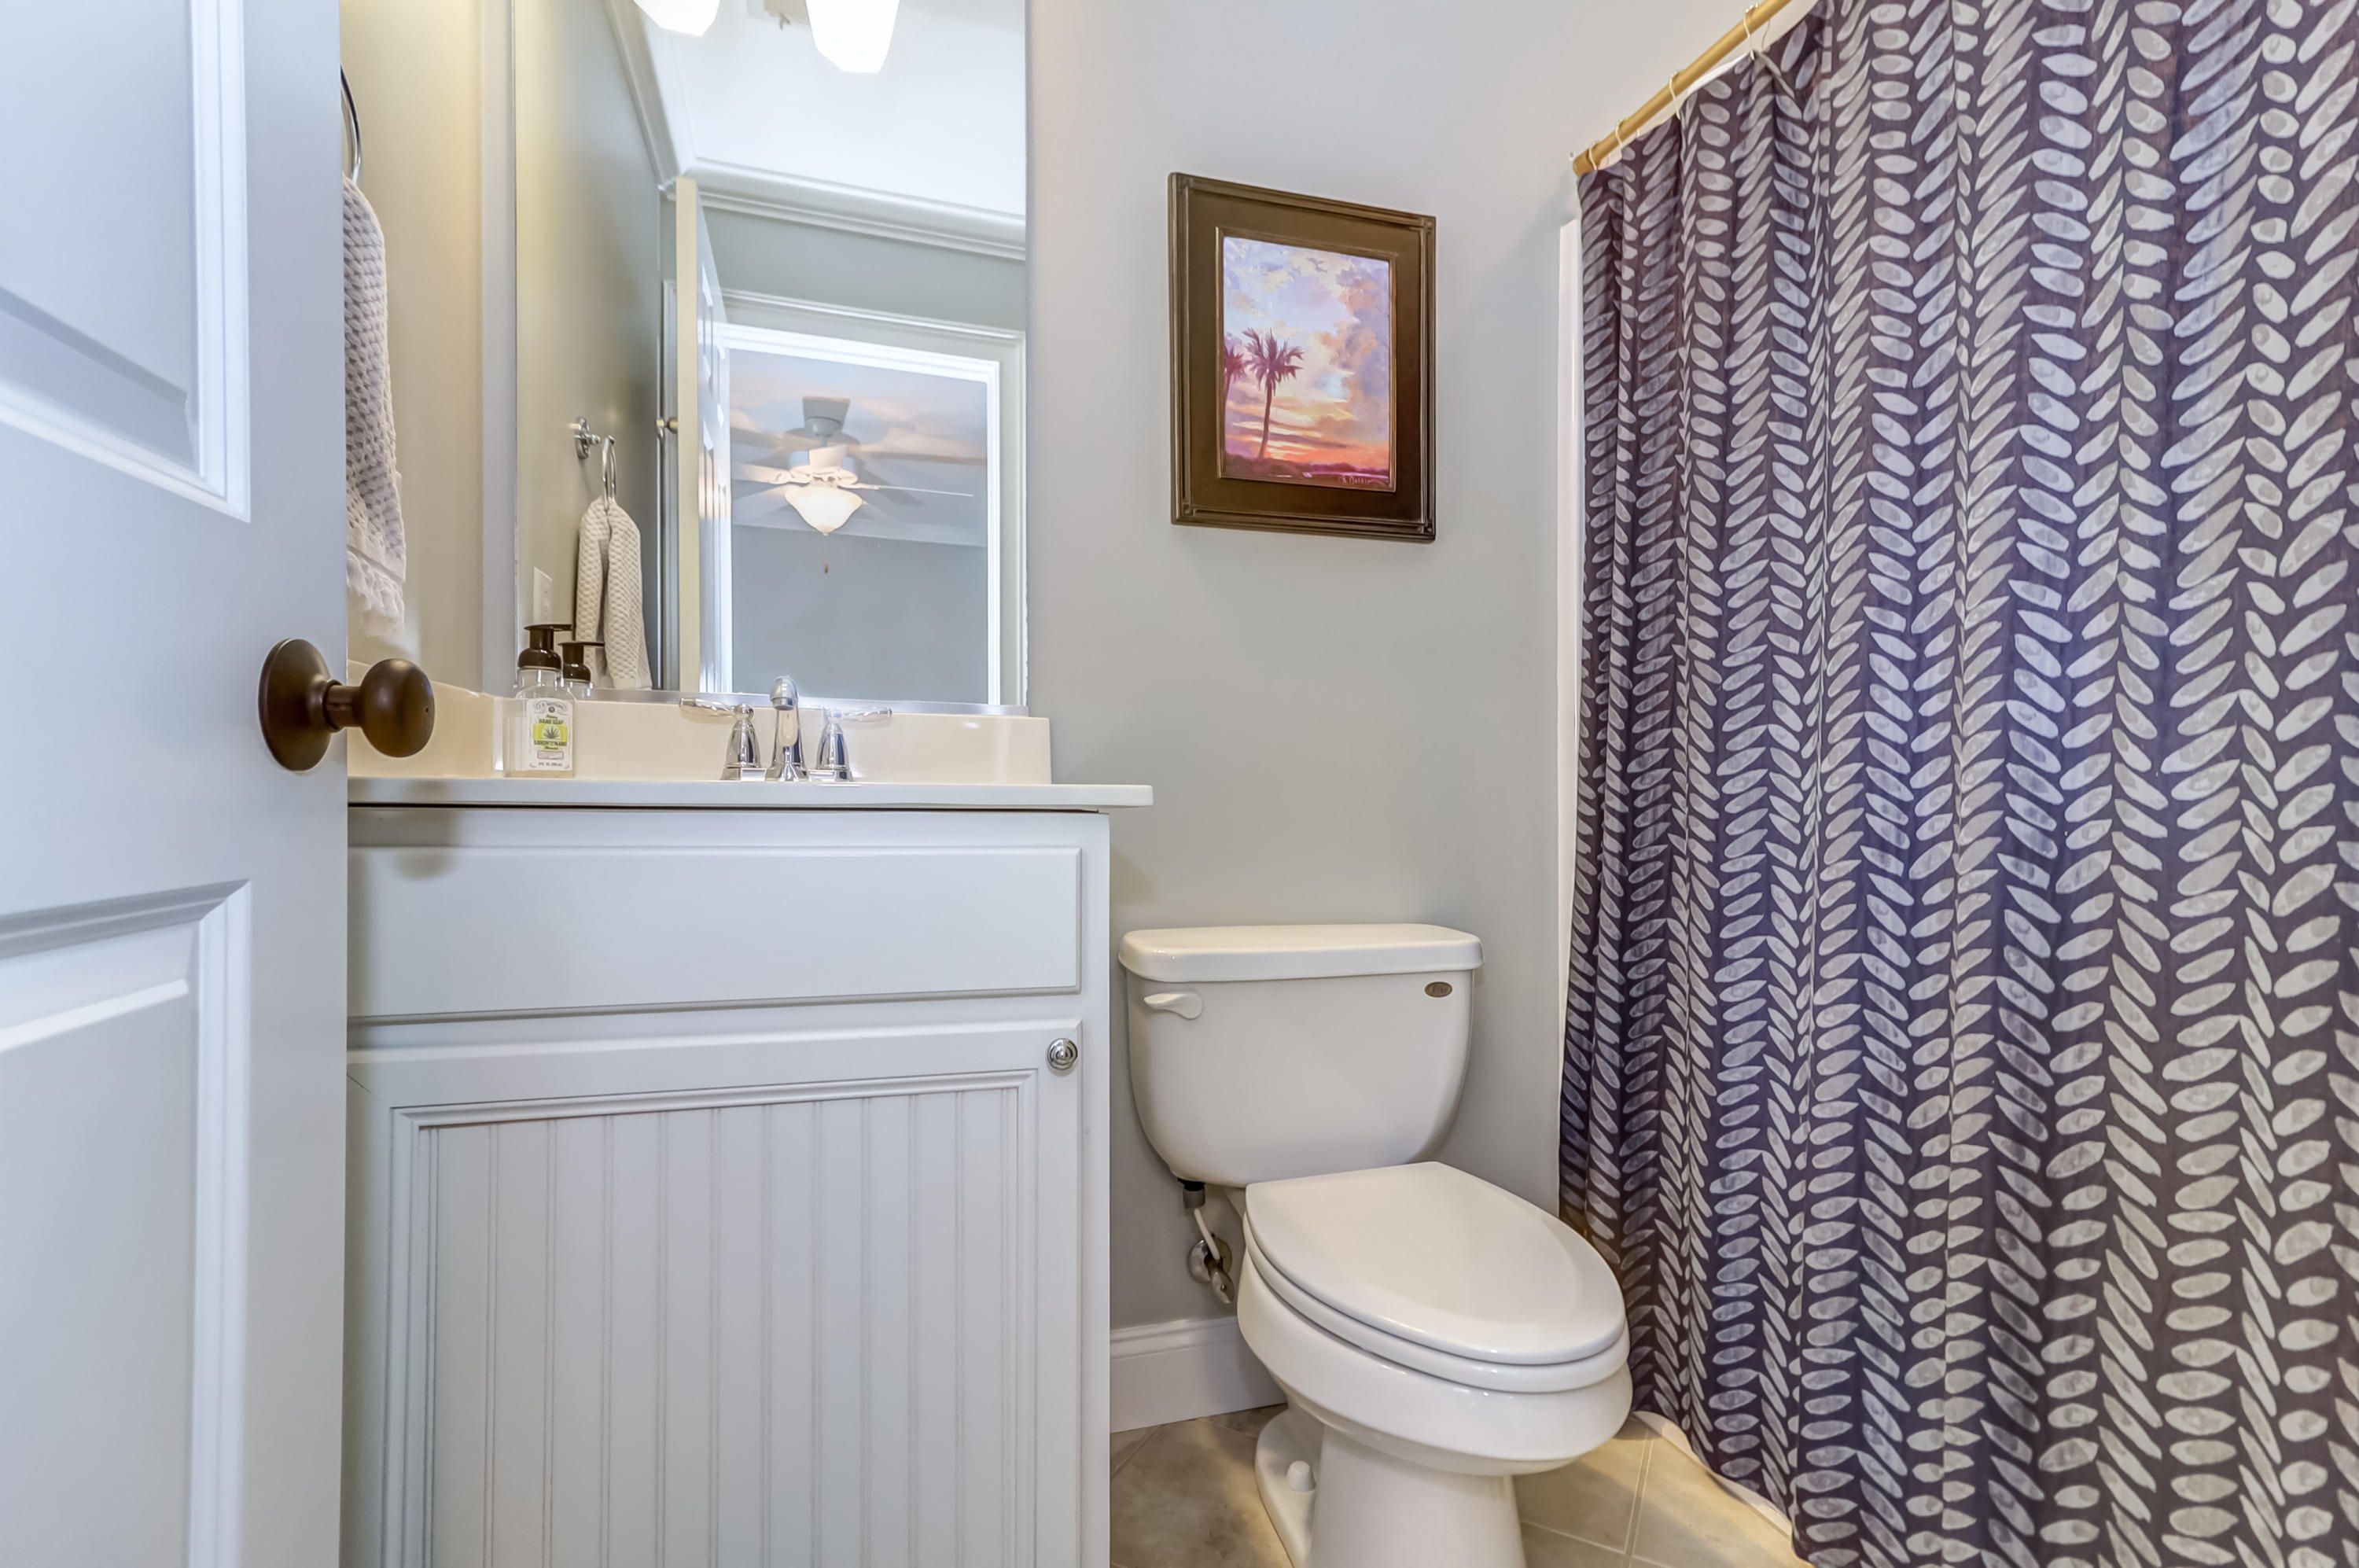 Woodward Pointe Homes For Sale - 657 White Chapel, Charleston, SC - 20